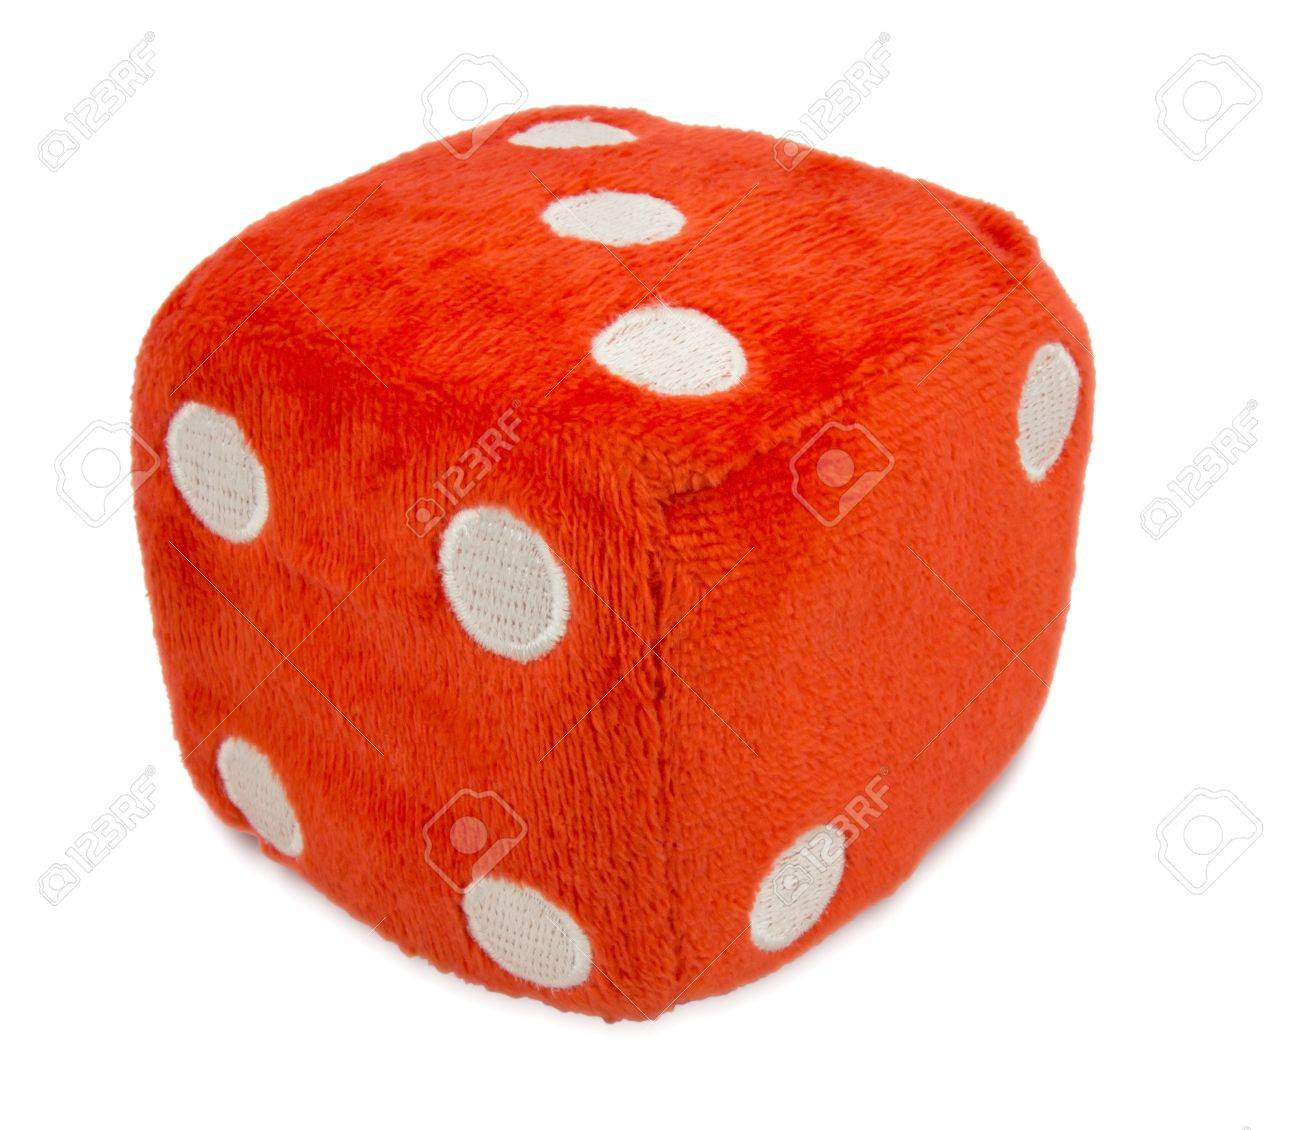 Red Fuzzy Dice Isolated On White Clipping Path Included Stock